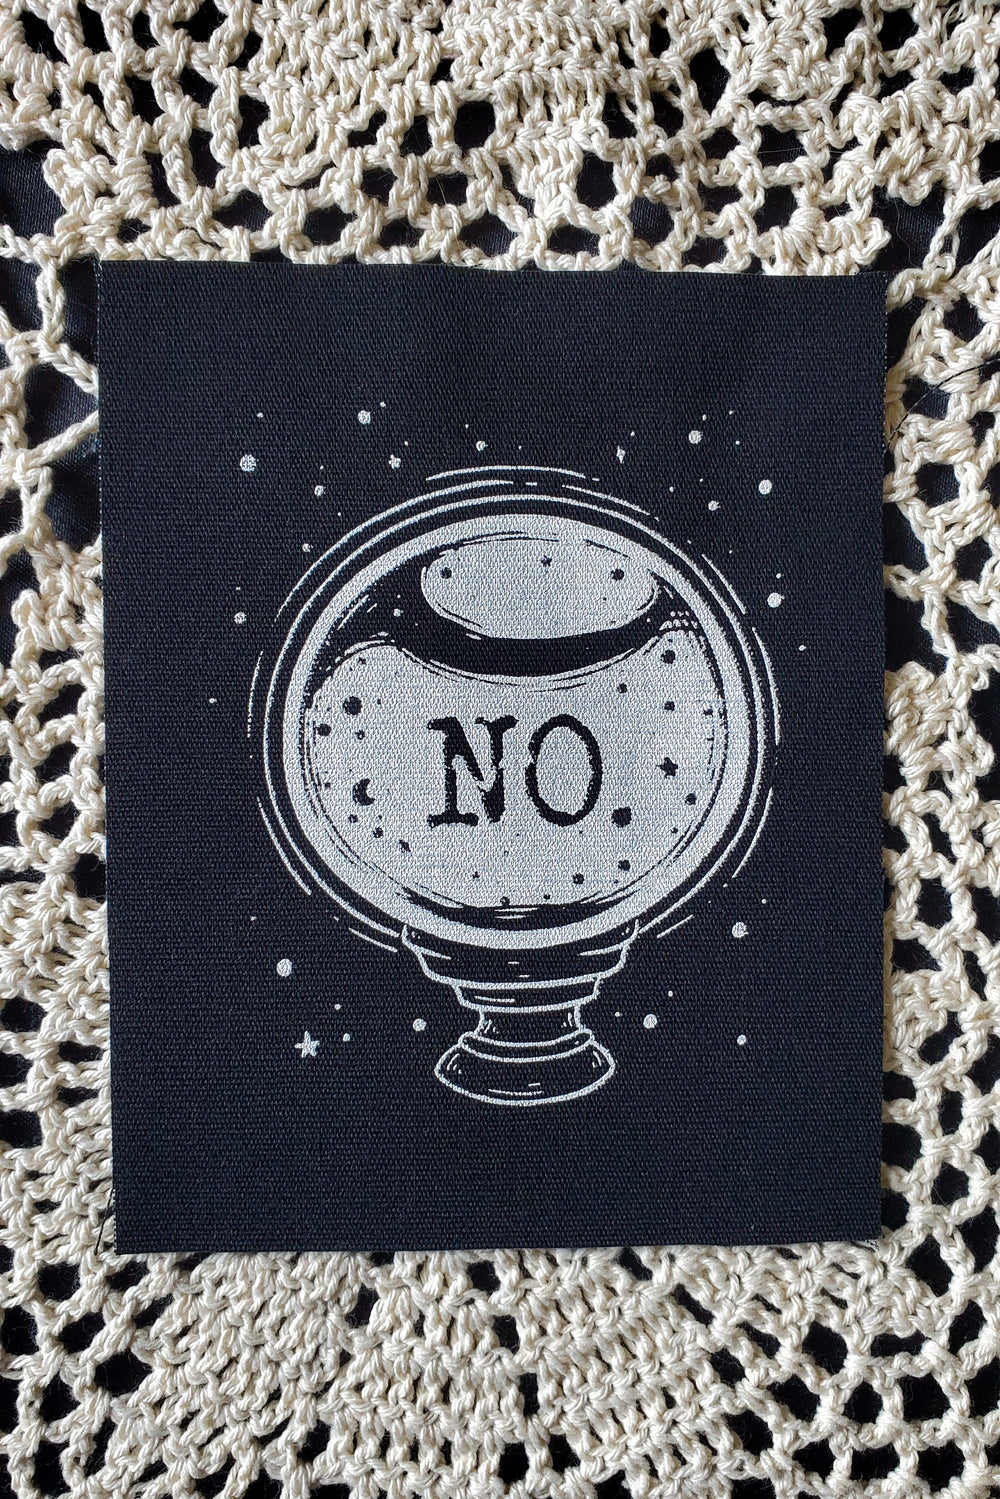 No. Crystal Ball Fabric Patch -Lowbrow misfits White Stag Art